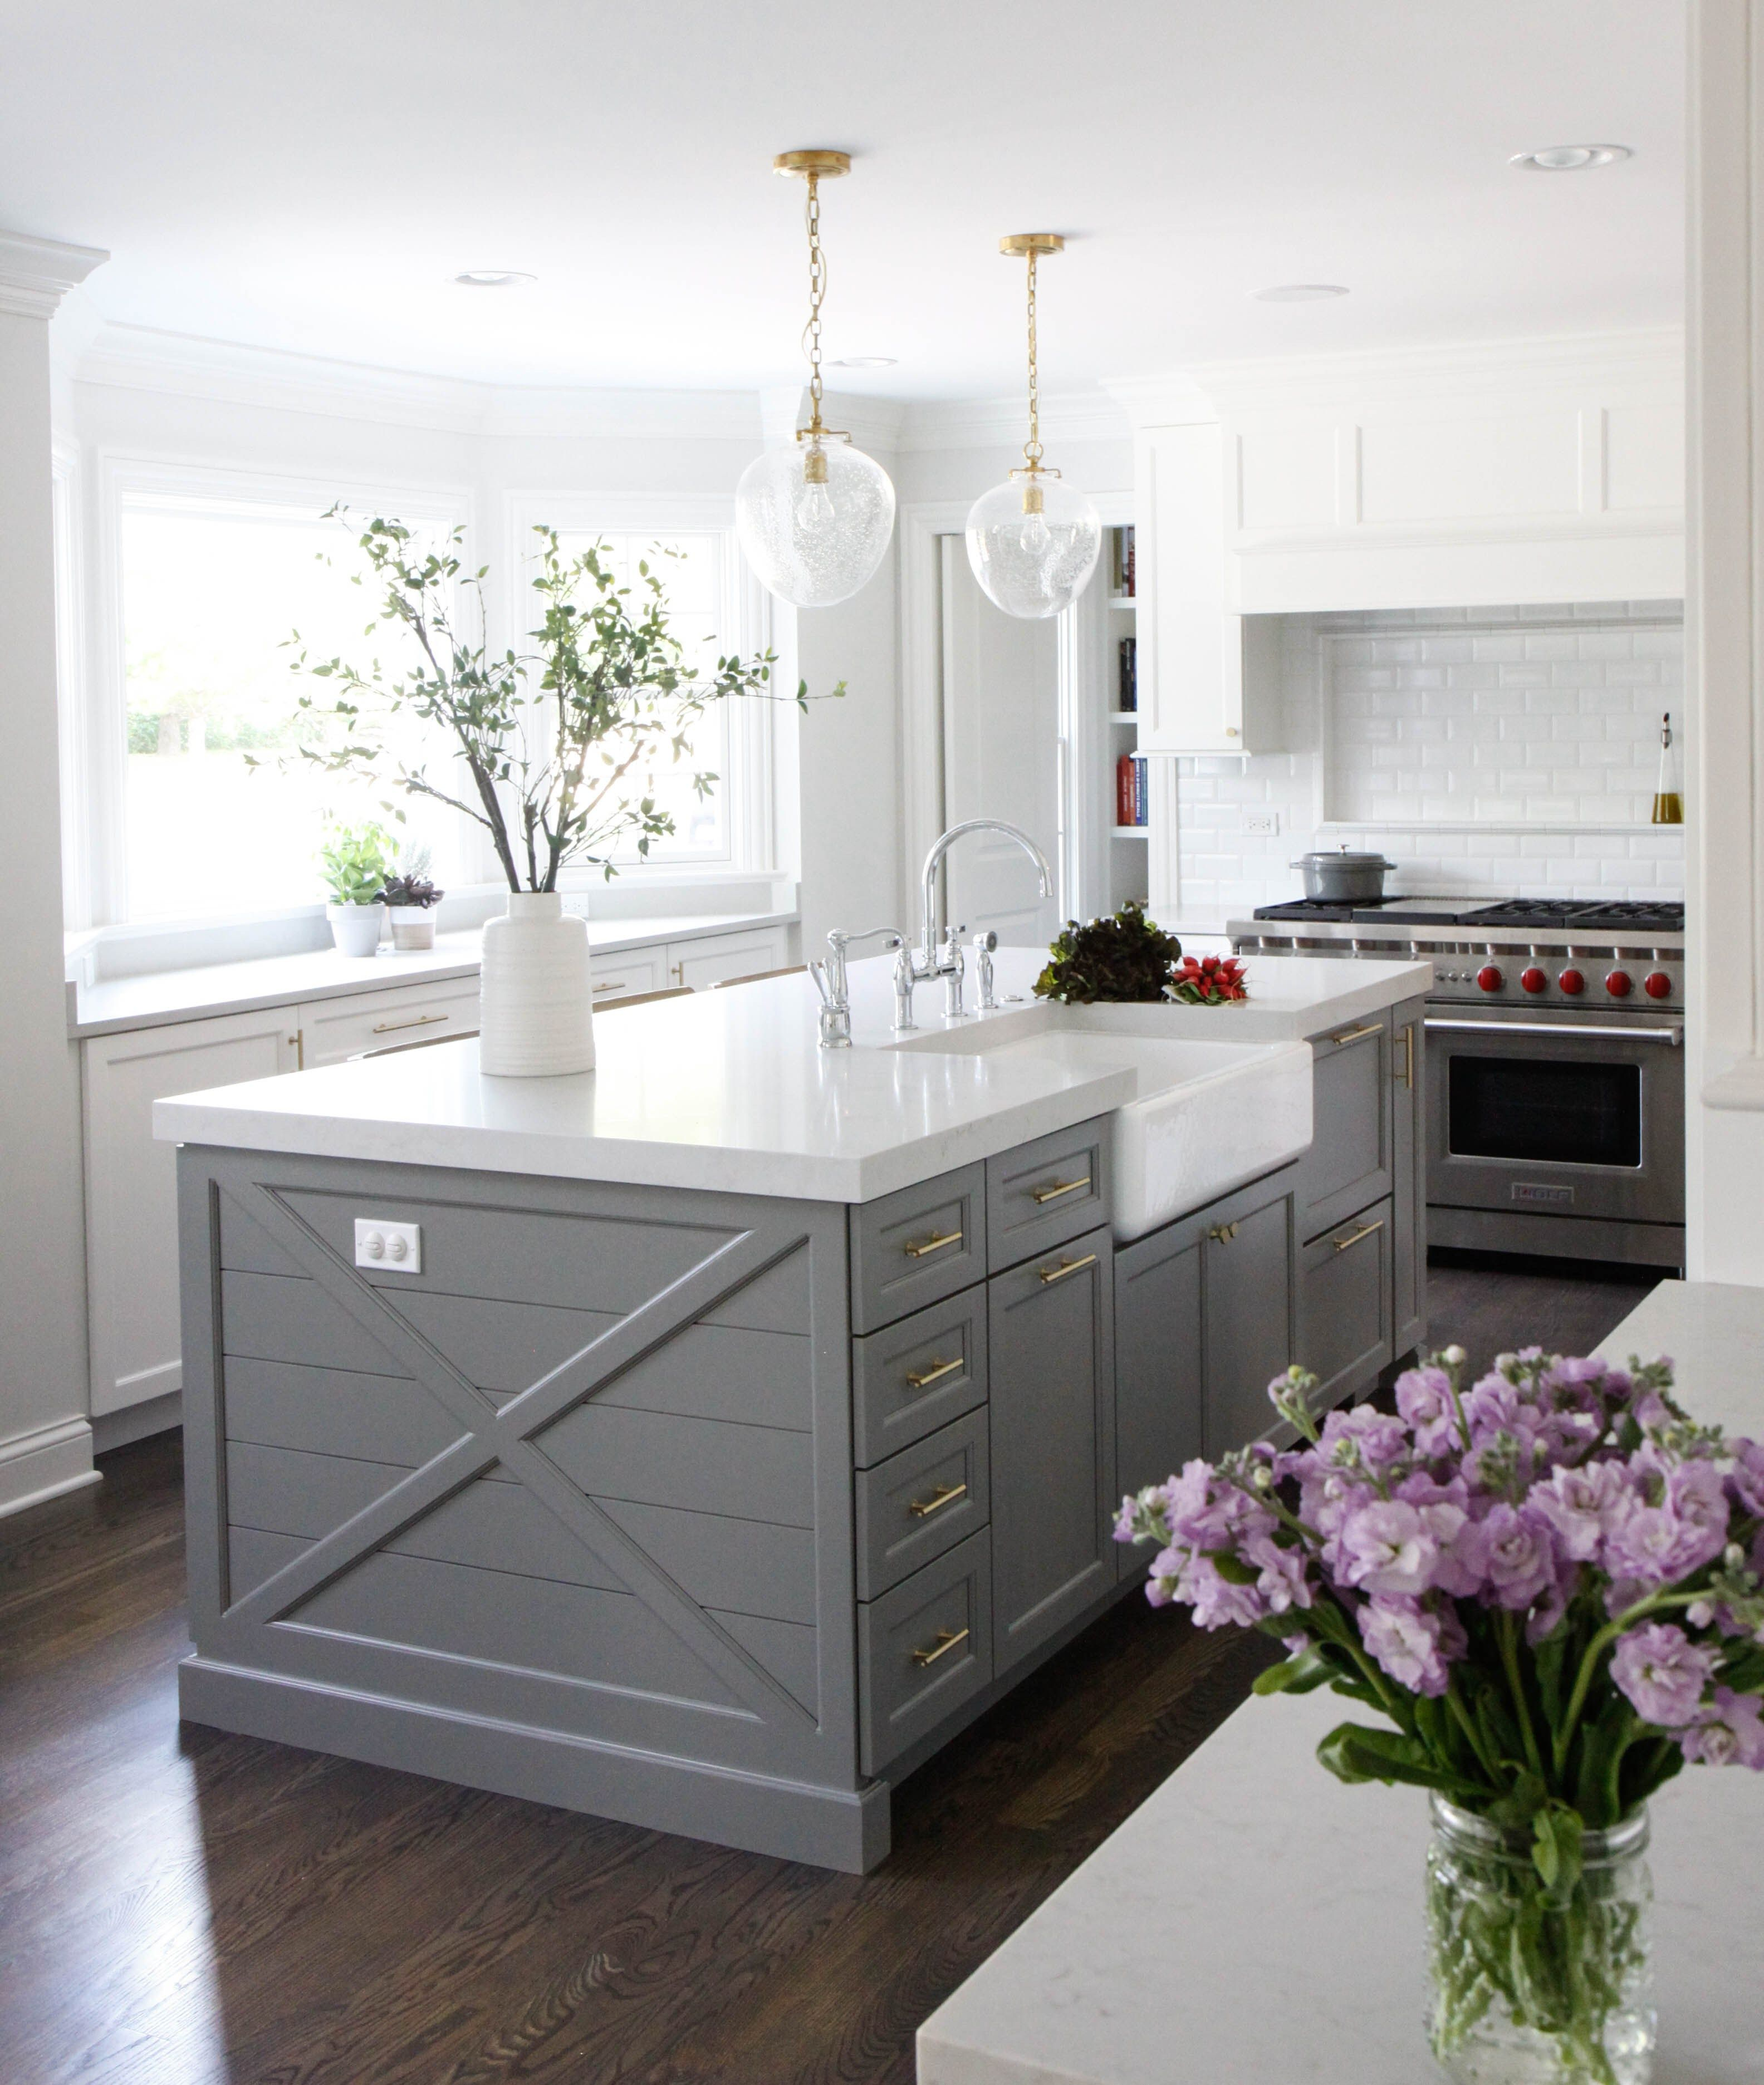 The Barrington Renovation: Before and Afters | Kitchens, House and ...